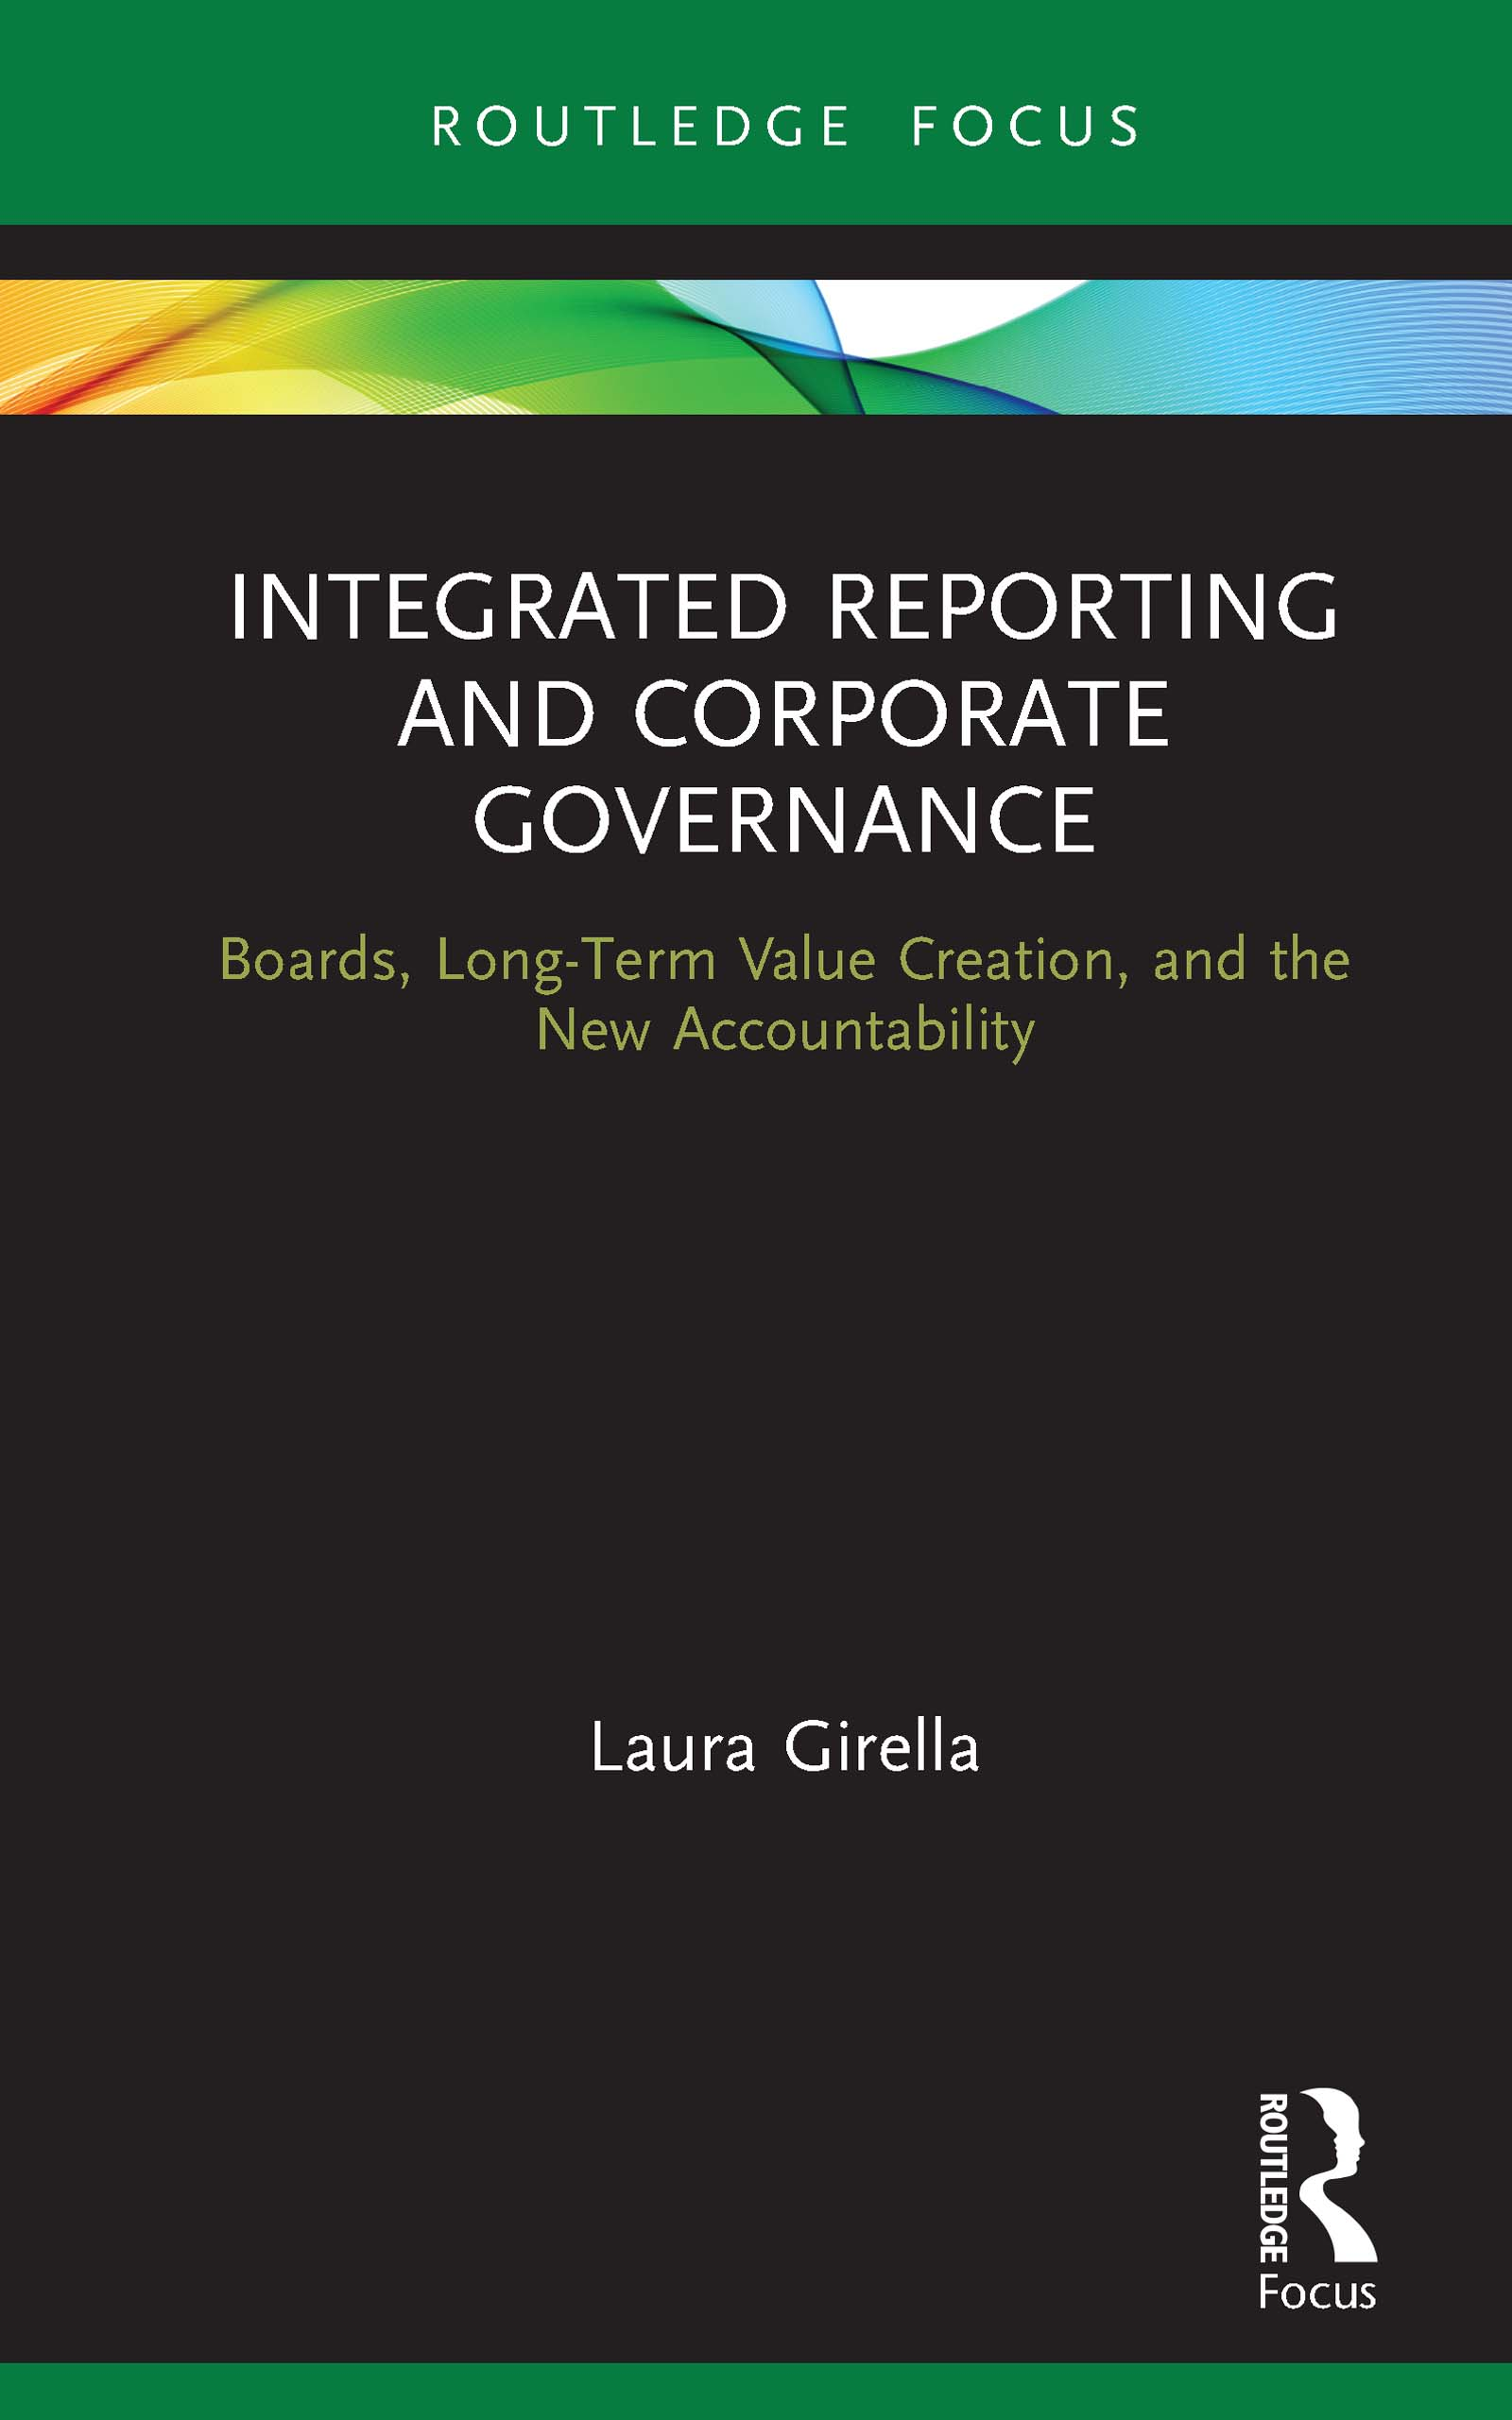 Boards, reporting, and long-term value creation